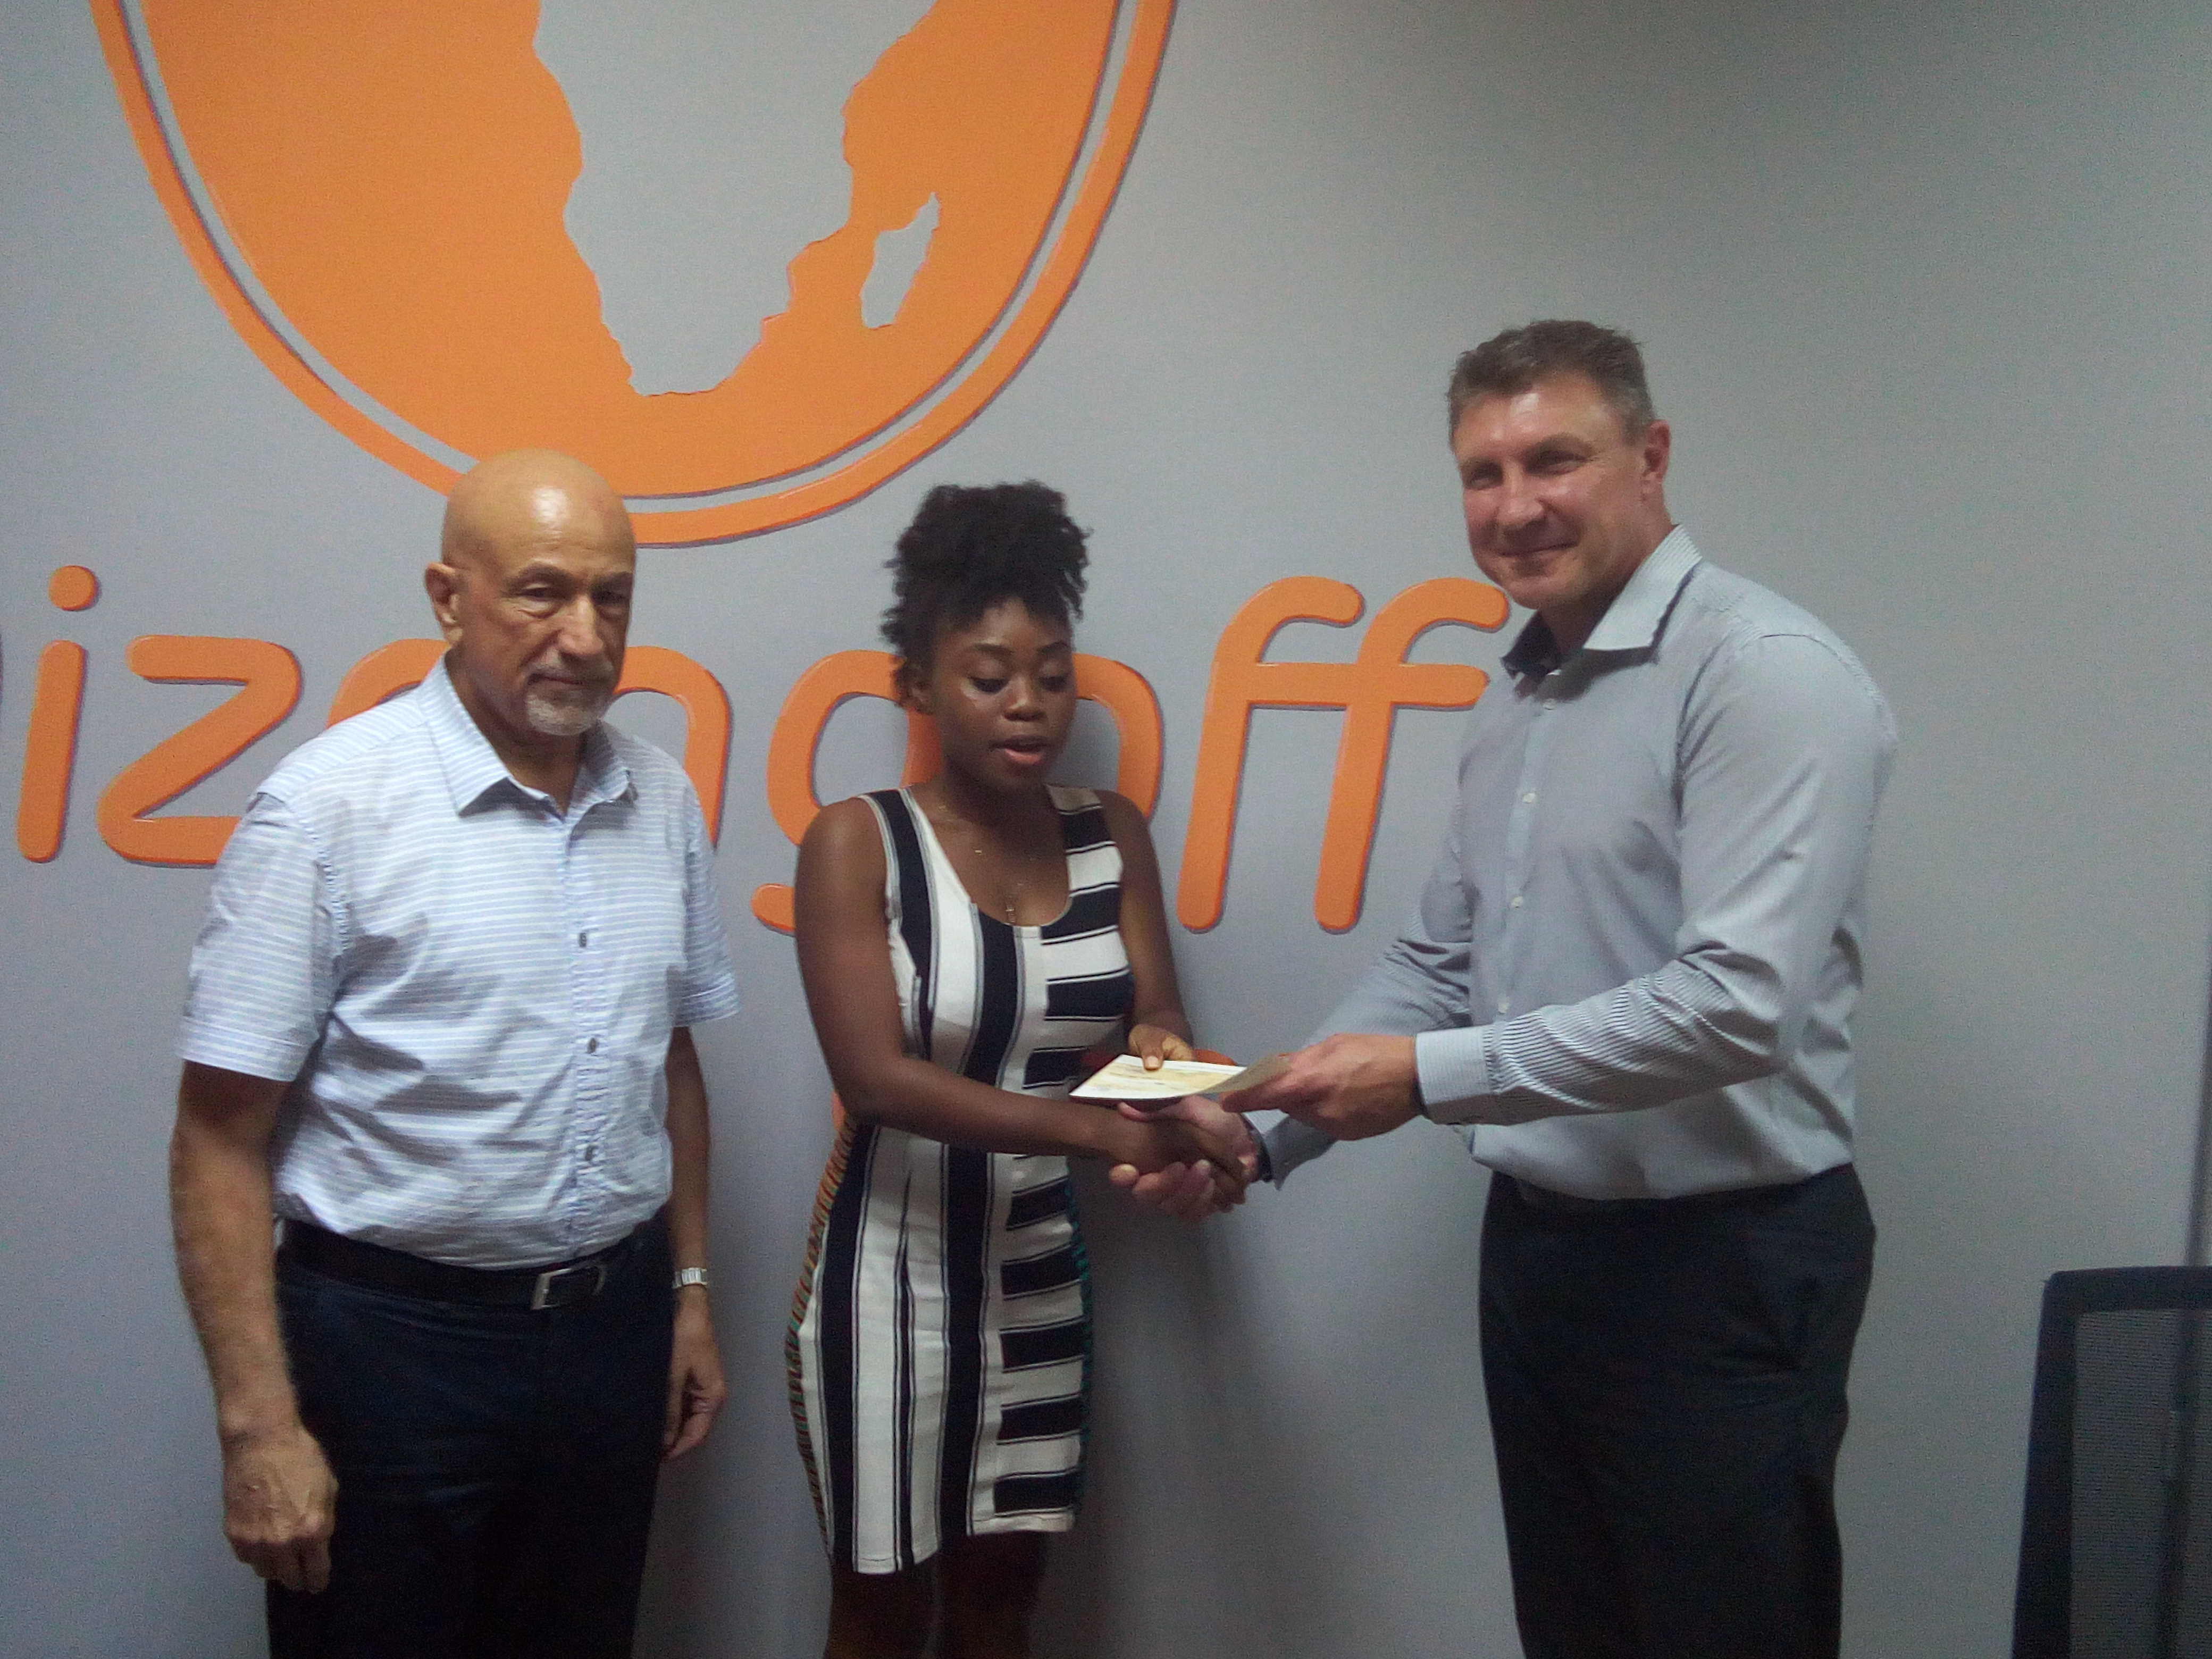 Ms Yoki Tee-Koduah (middle), the Project Lead for Agrihouse Foundation, receiving the cheque from Mr Mark Douglas (right)